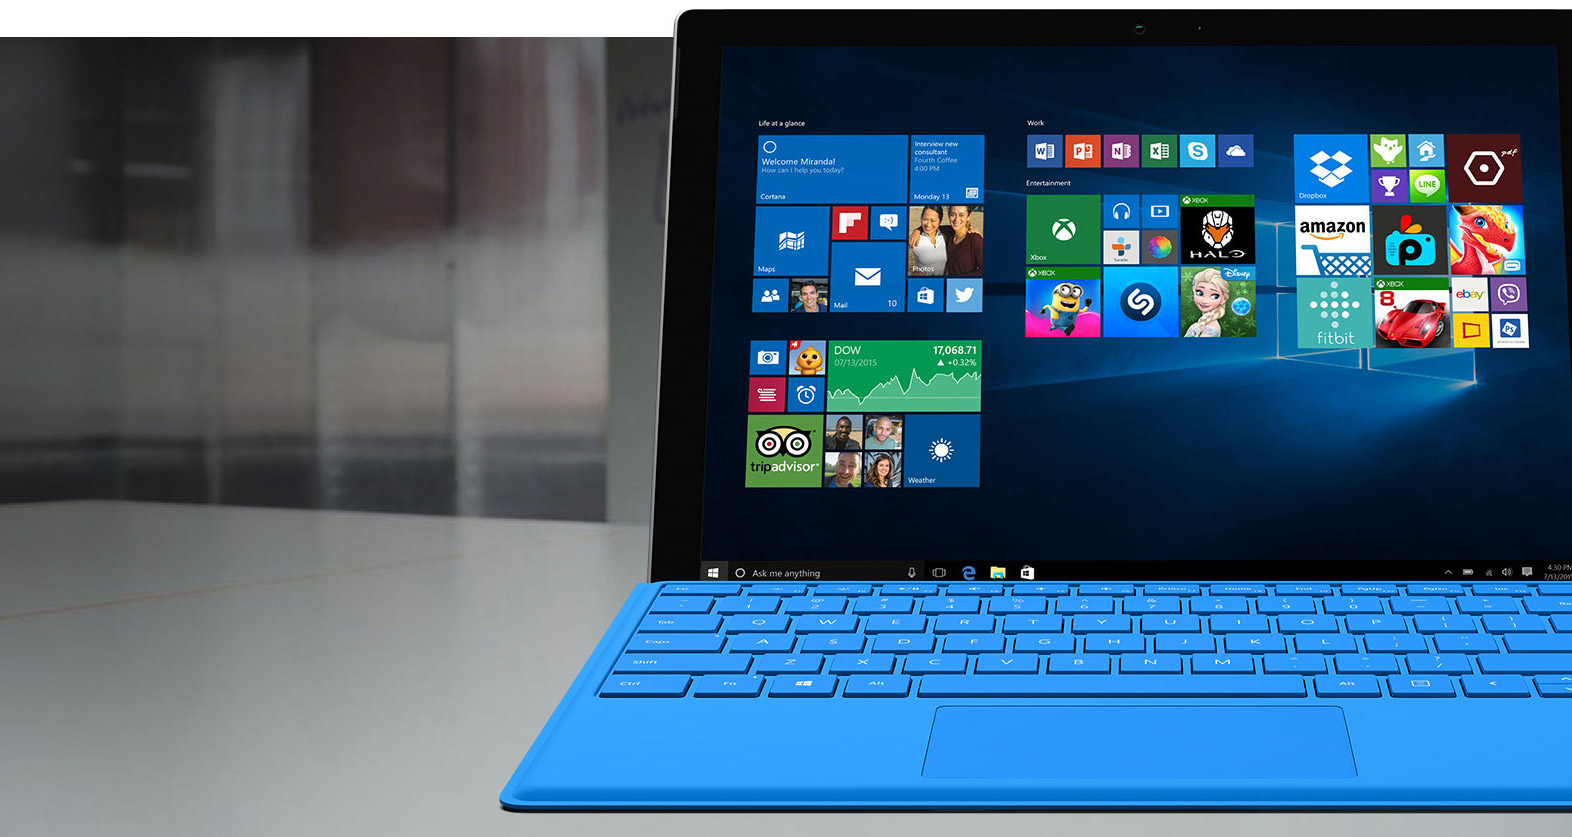 microsoft surface pro 4 launching in india on january 7th phonebunch. Black Bedroom Furniture Sets. Home Design Ideas